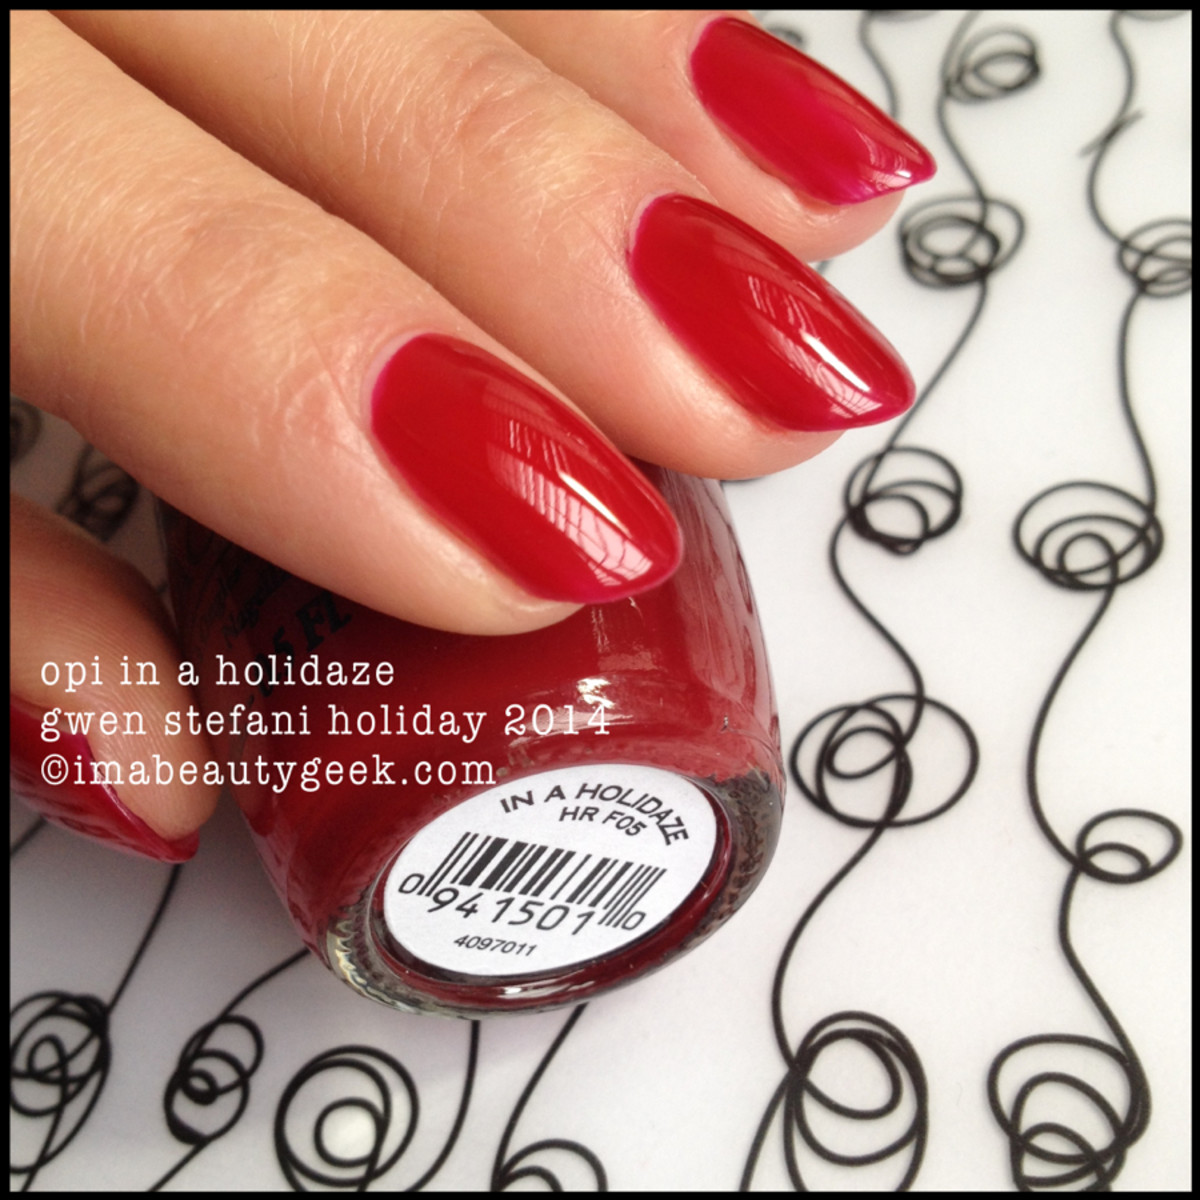 OPI In a Holidaze Gwen Stefani Holiday 2014